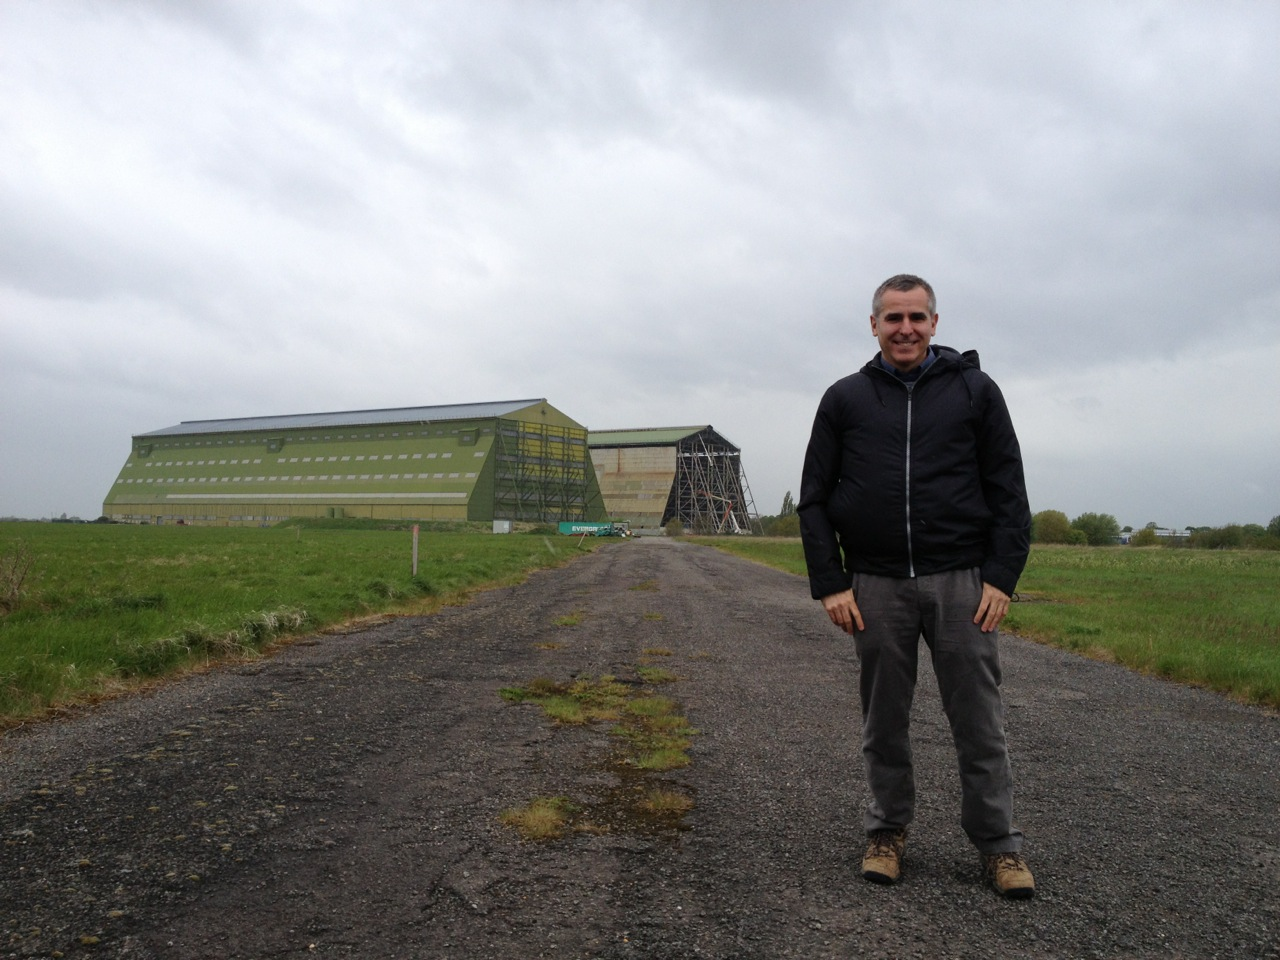 Dan Grossman at Cardington Airship Sheds